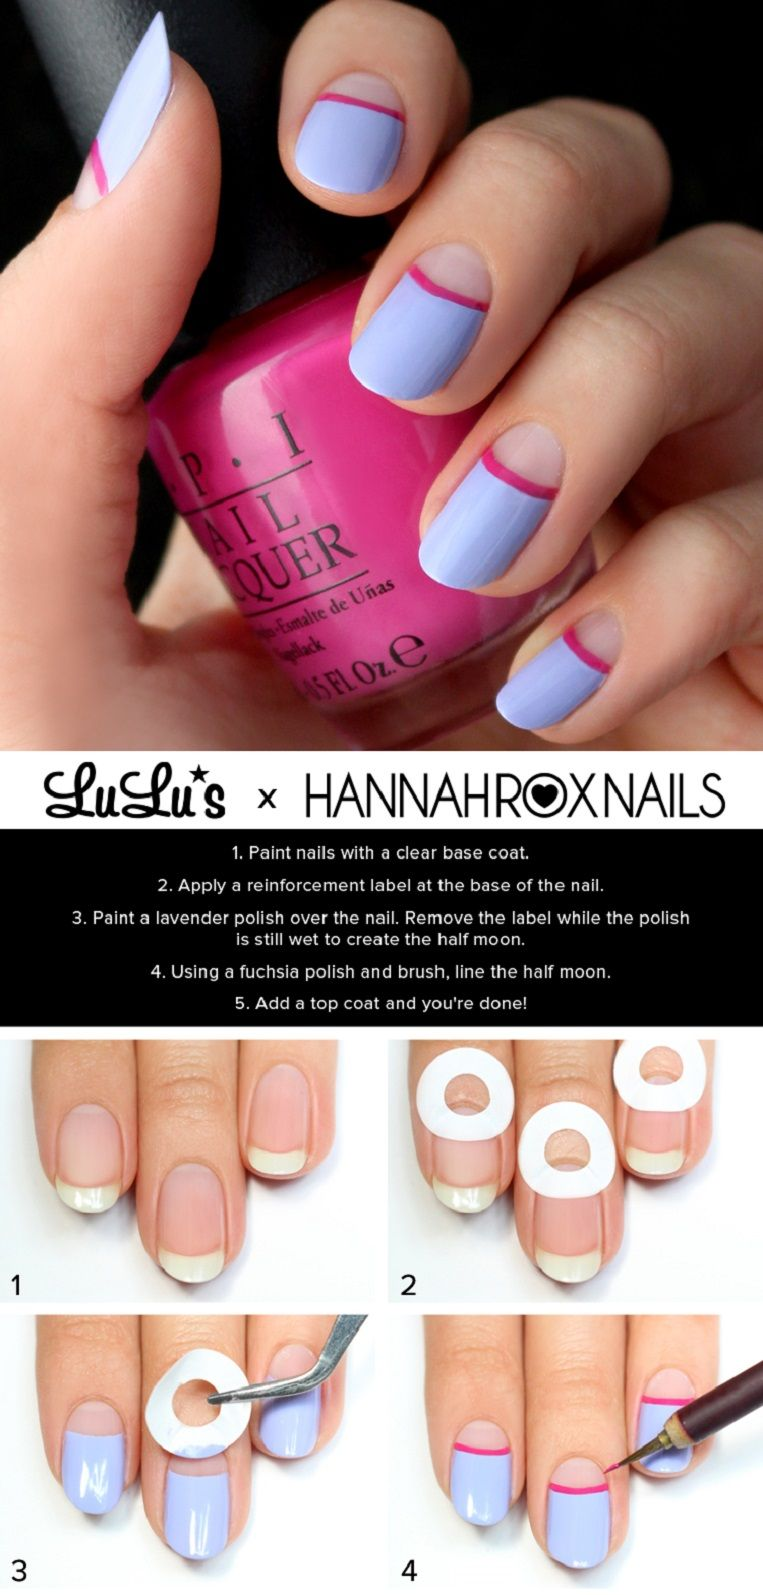 Pin by katlin portwood on nail art idea in pinterest nails